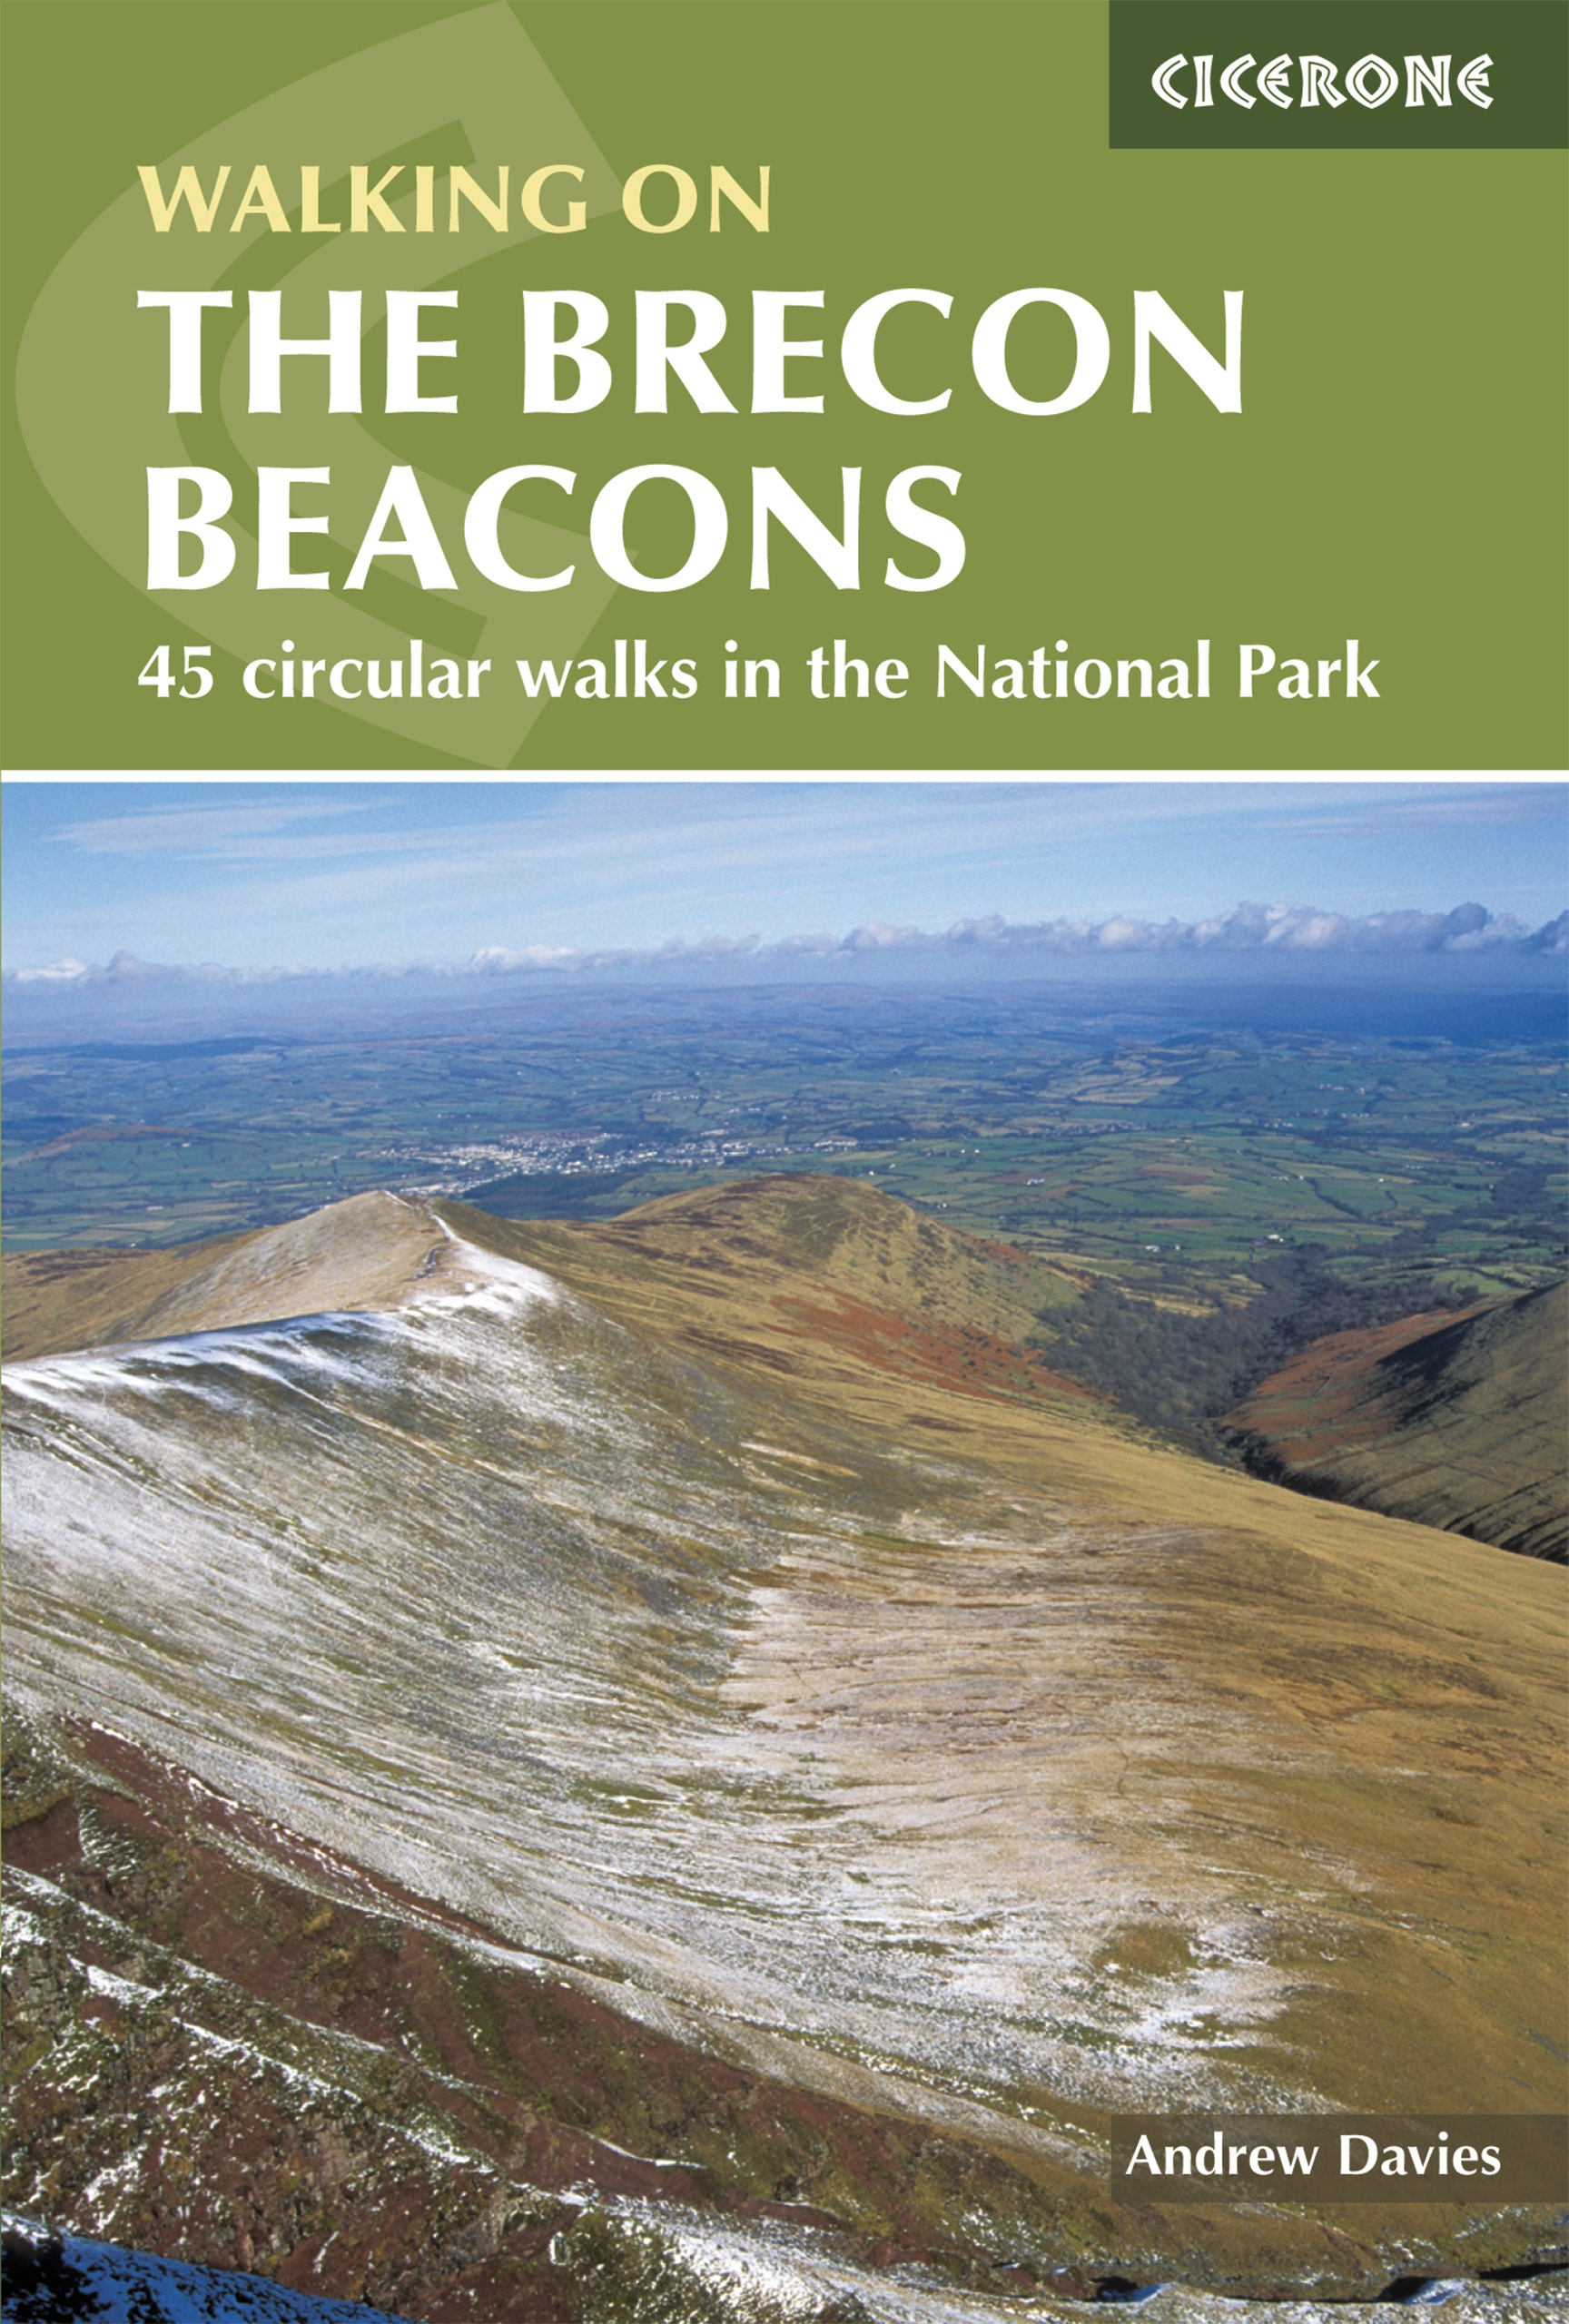 Walking on the Brecon Beacons